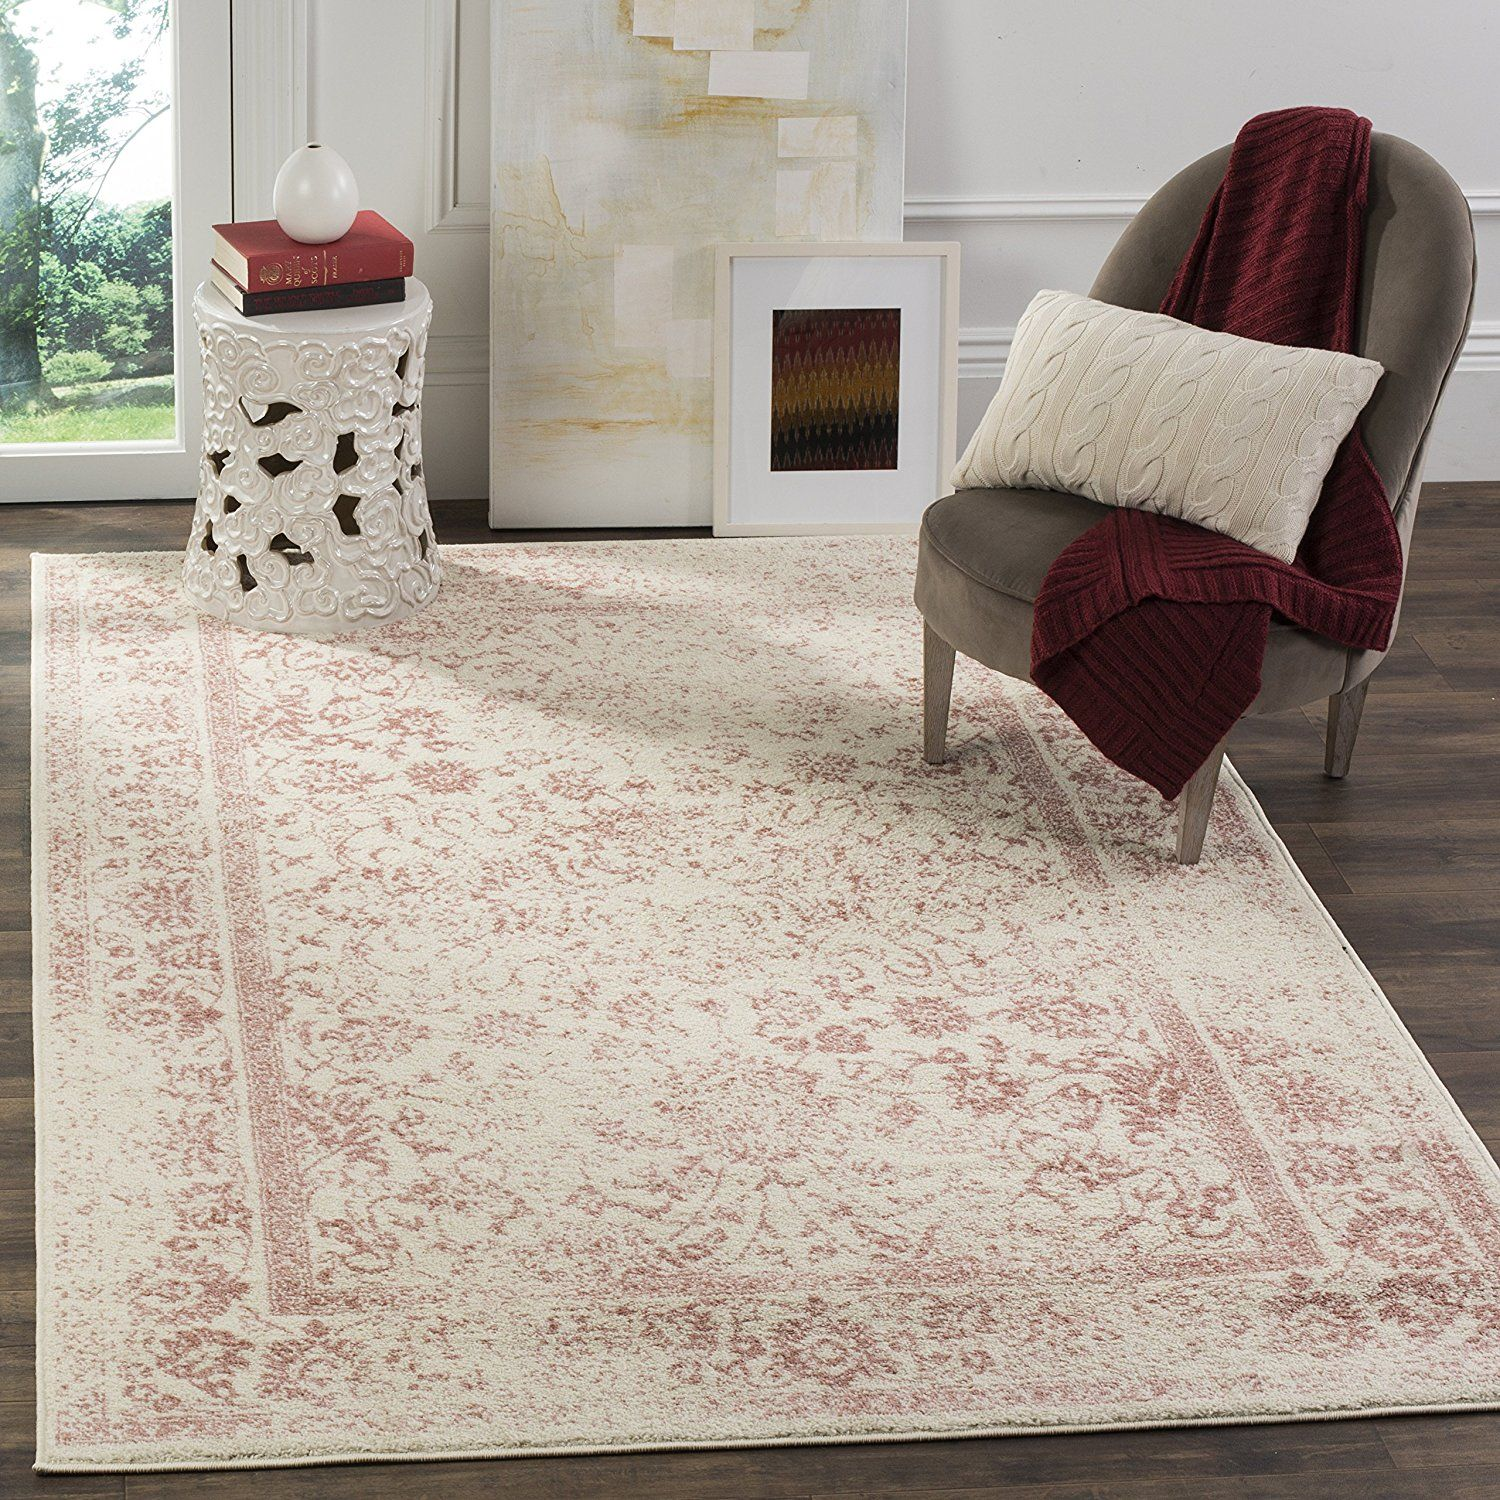 amazoncom safavieh adirondack collection adr109a grey and blue oriental vintage distressed area rug